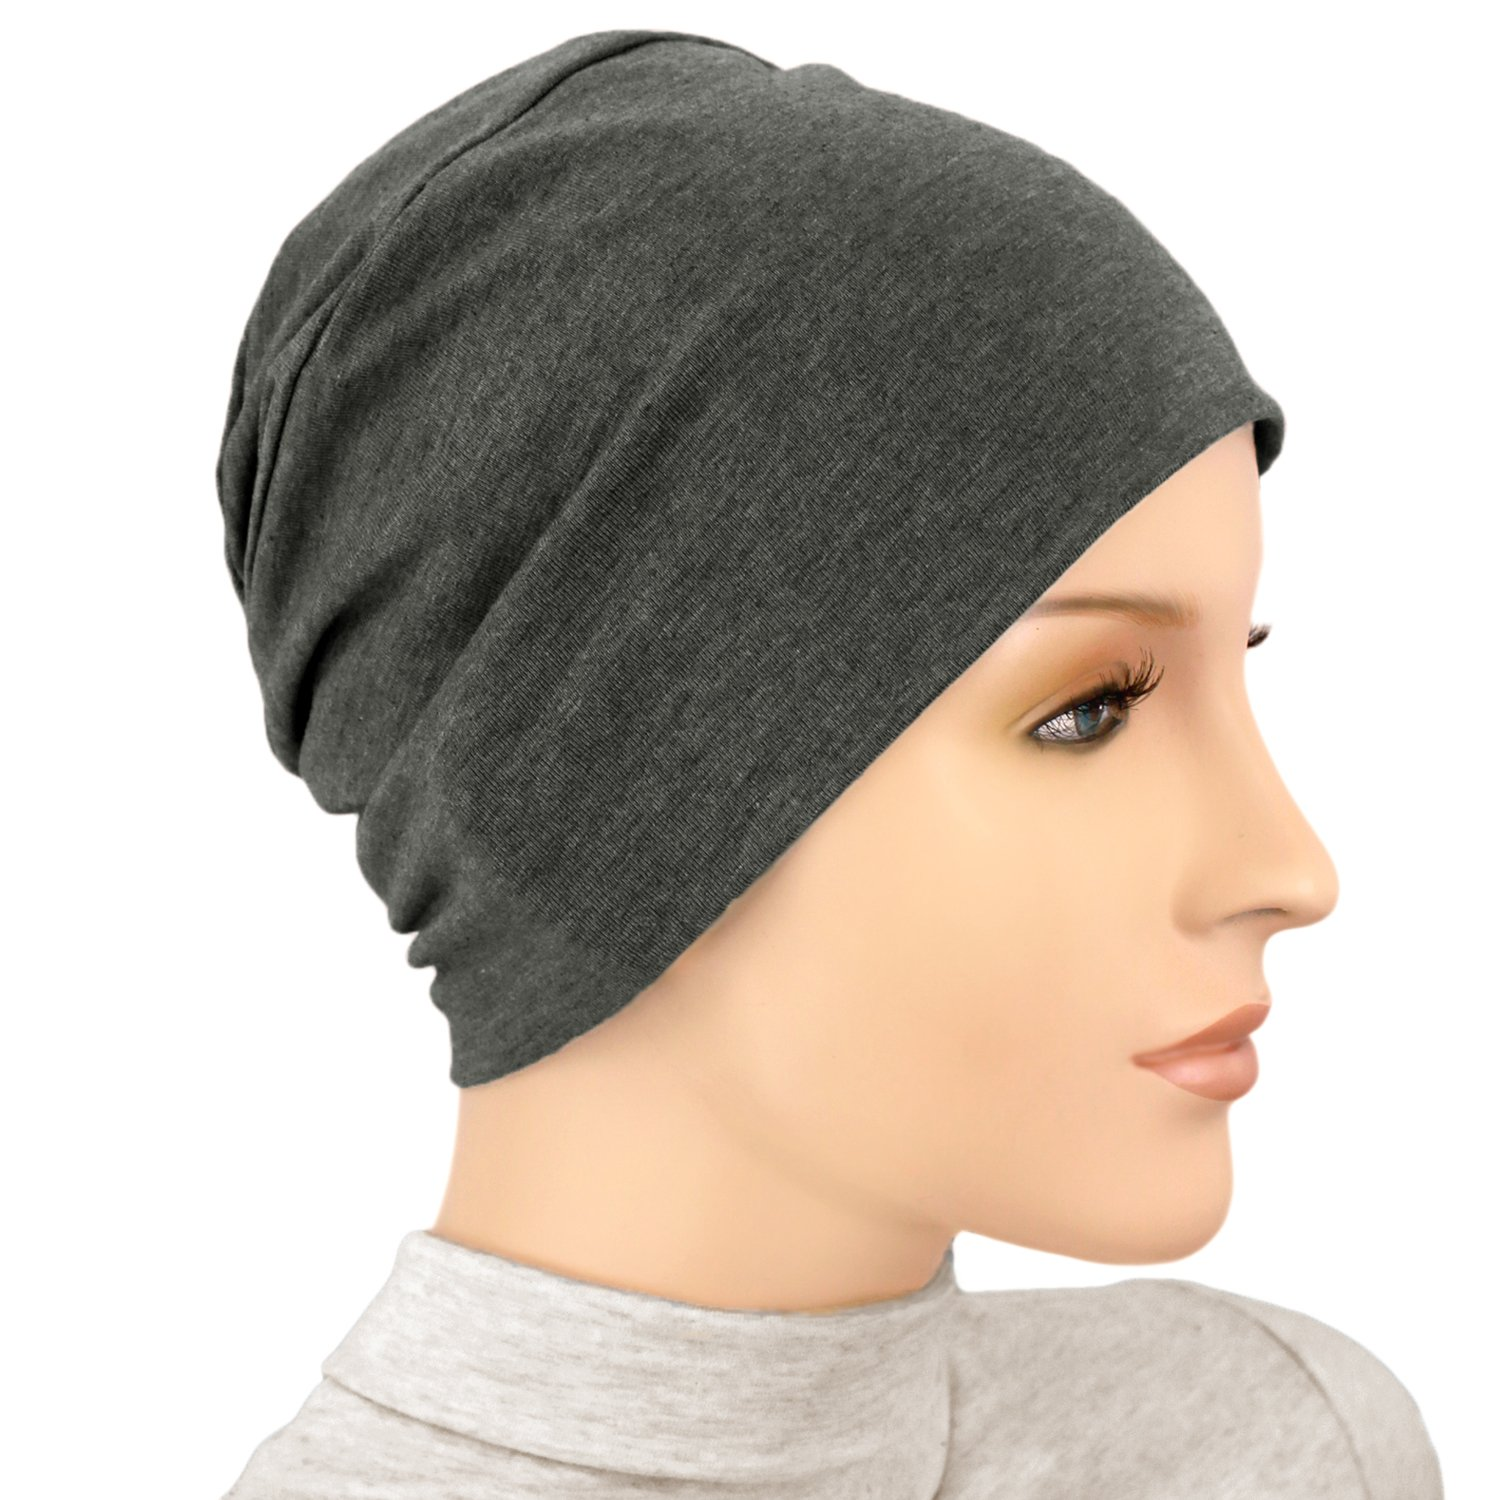 Hats for You Women's Activity Chemo Cap, Charcoal, One Size